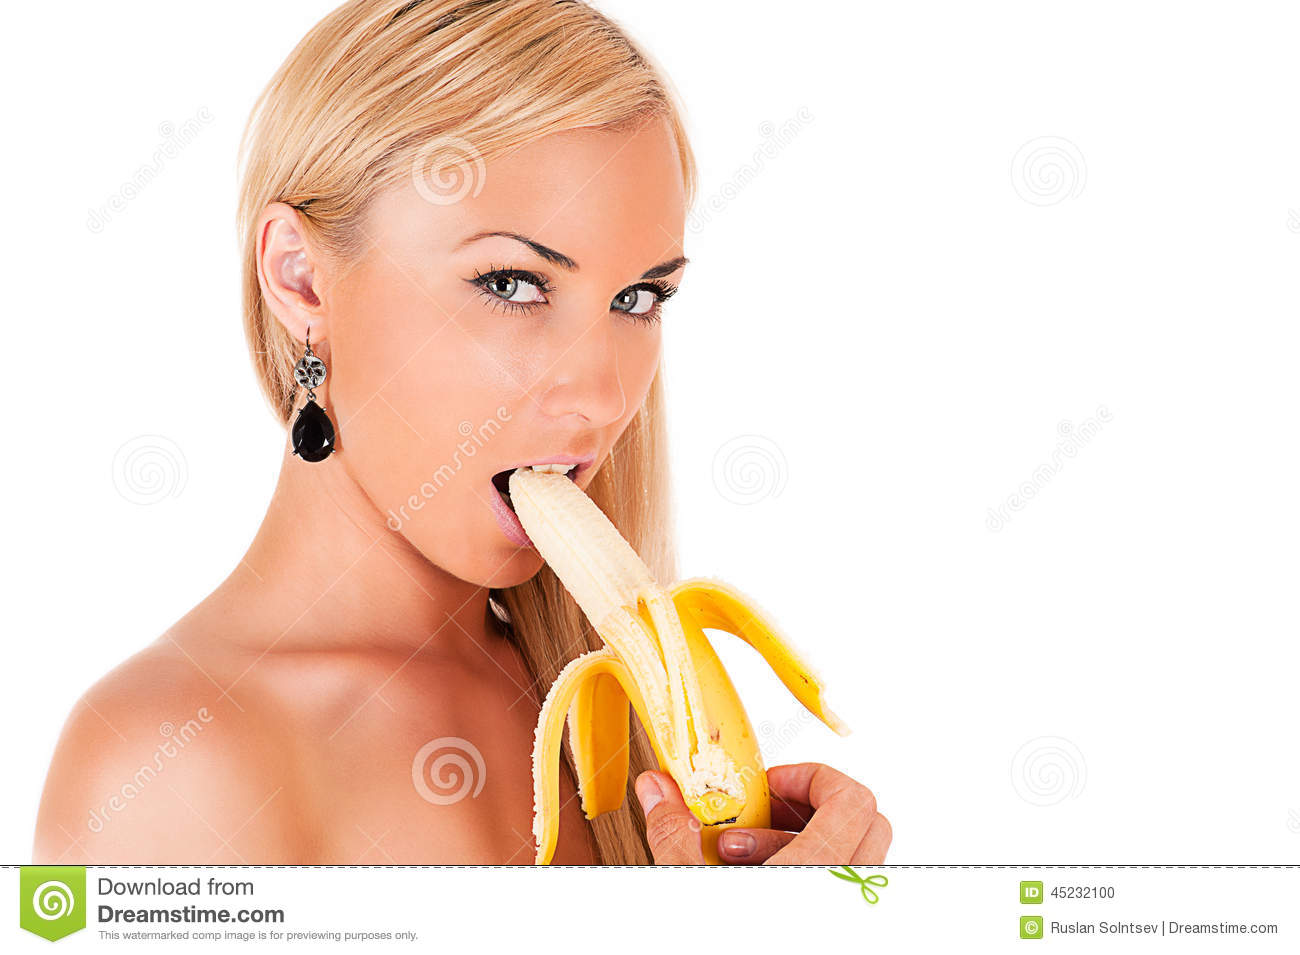 Pity, that sexy blonde eating banana